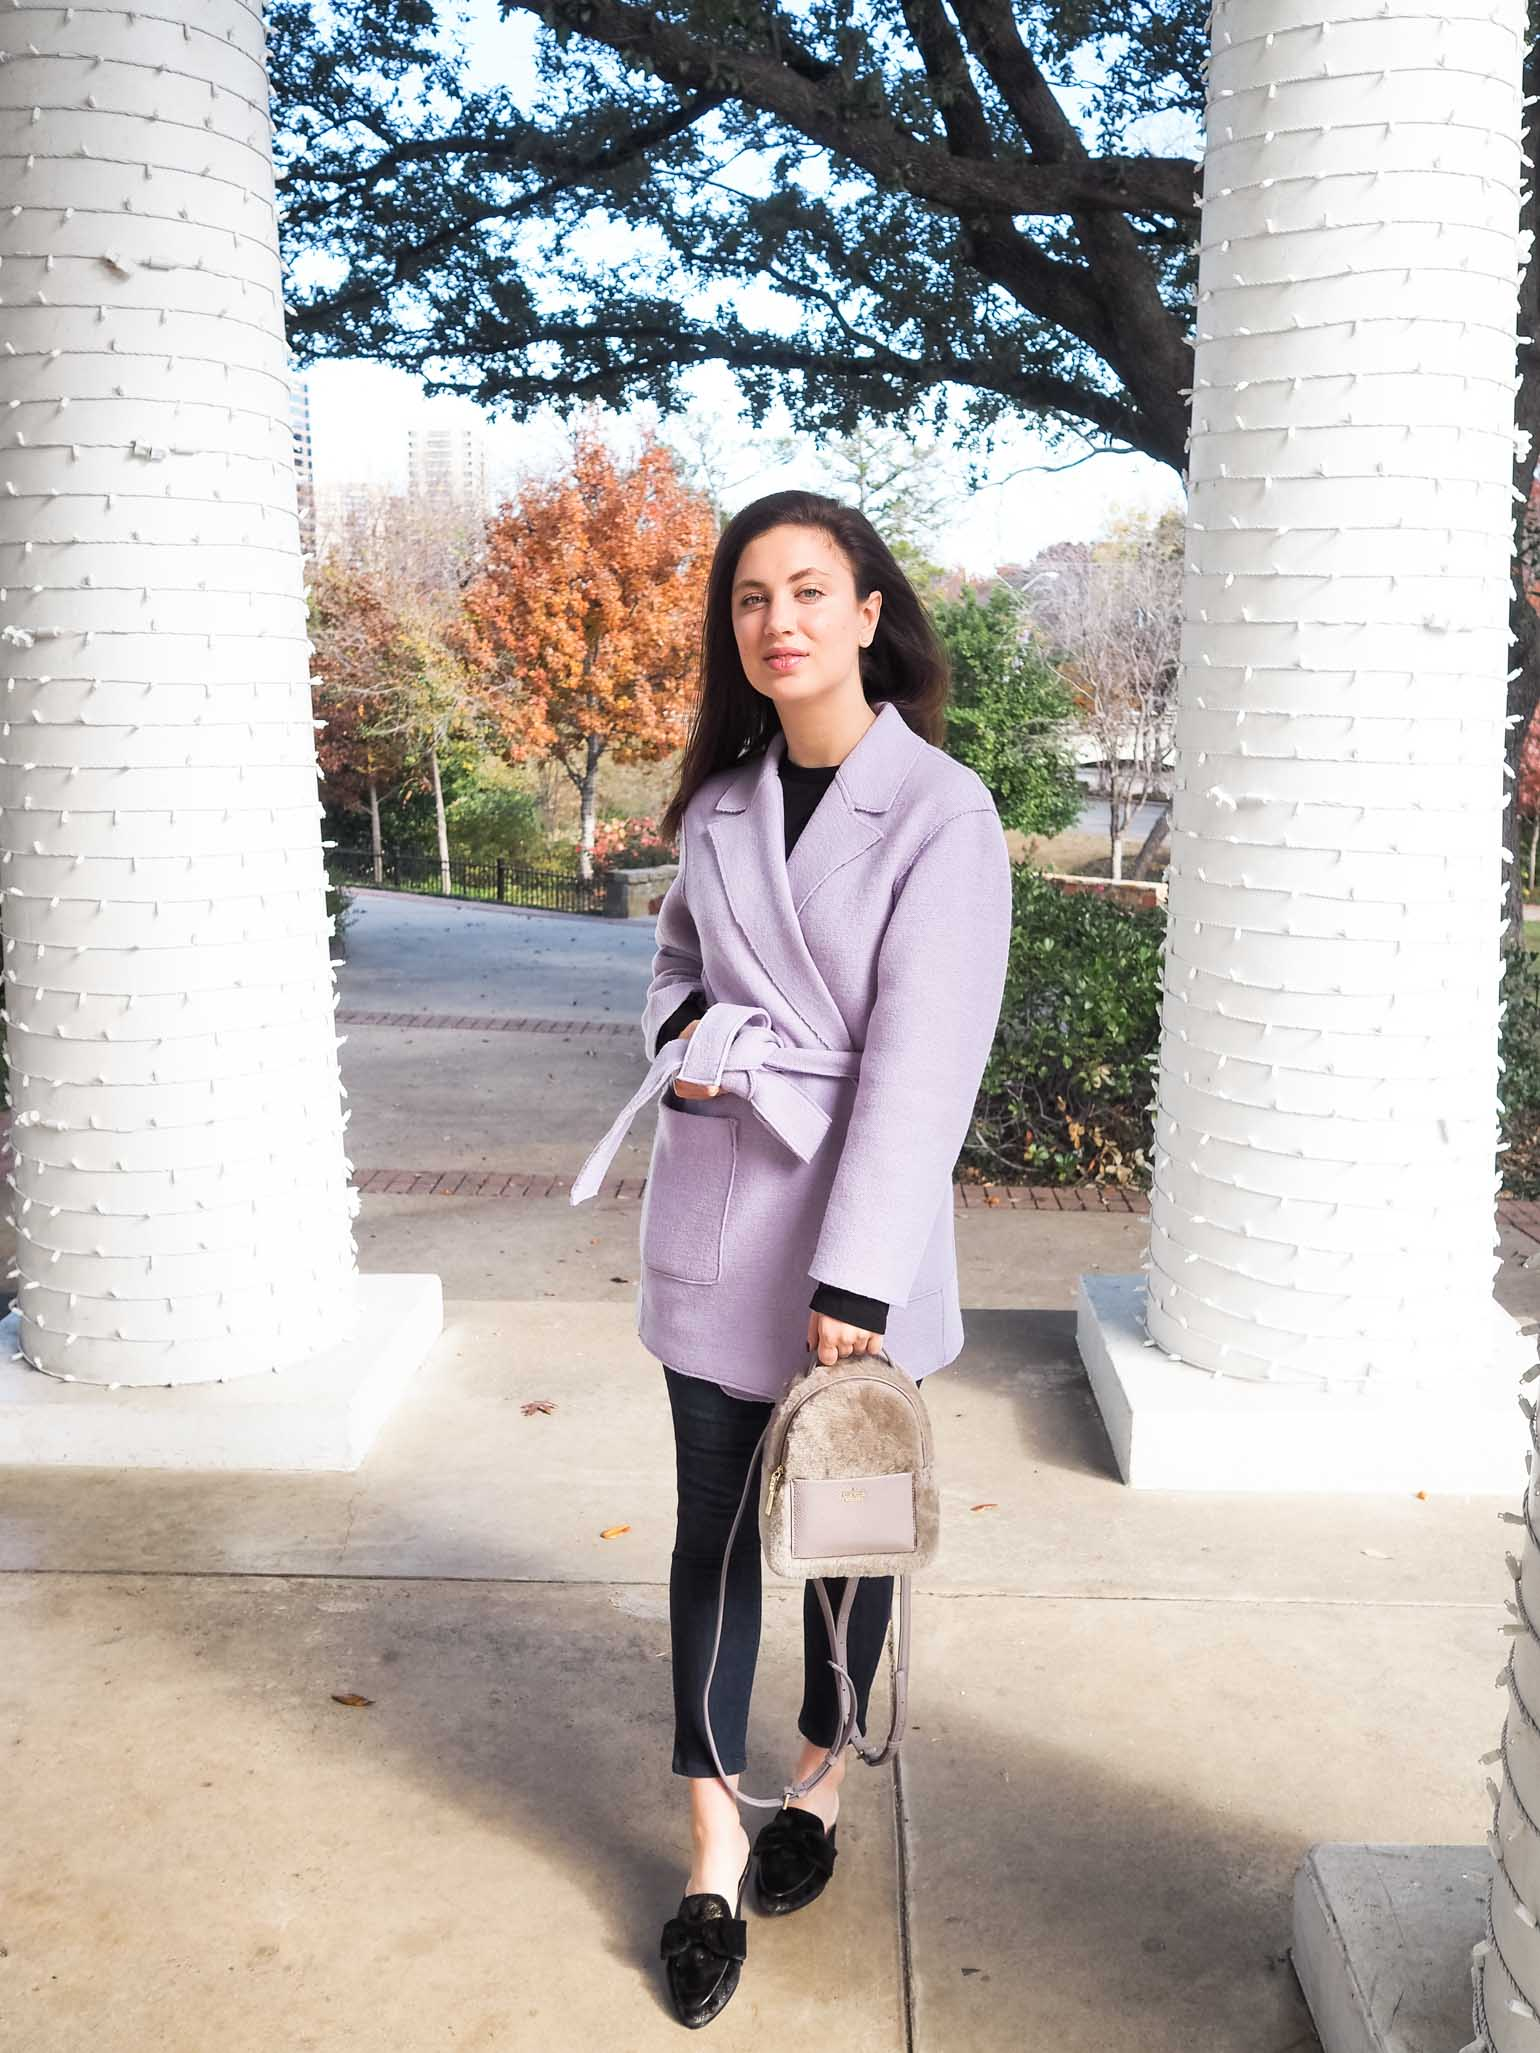 Cristina from The Brunette Nomad, Dallas fashion blogger, shows how to style this Kate Spade mini backpack